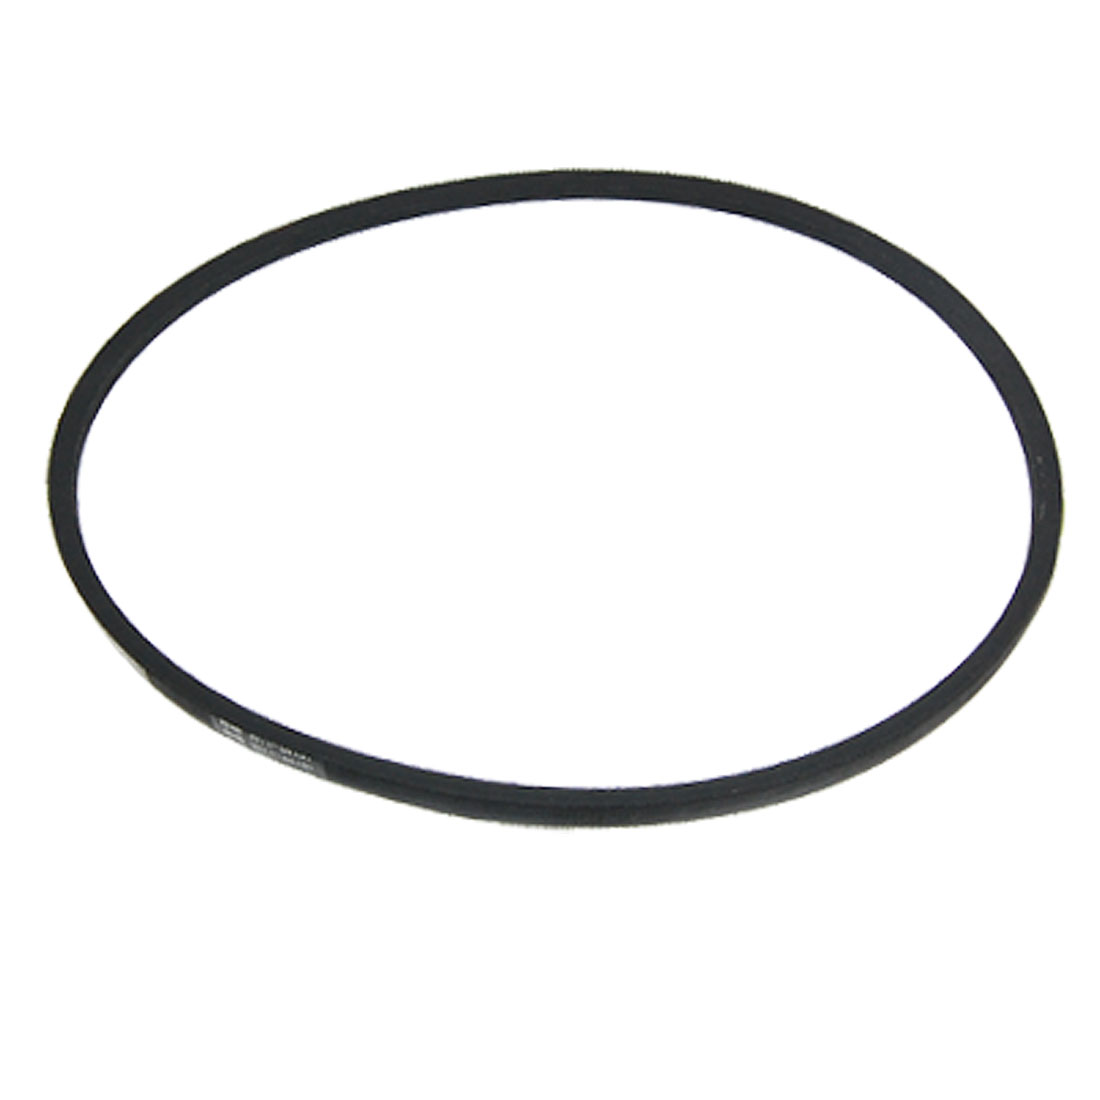 Transmitting Pulley Black Rubber A1100 Drive Band V Belt